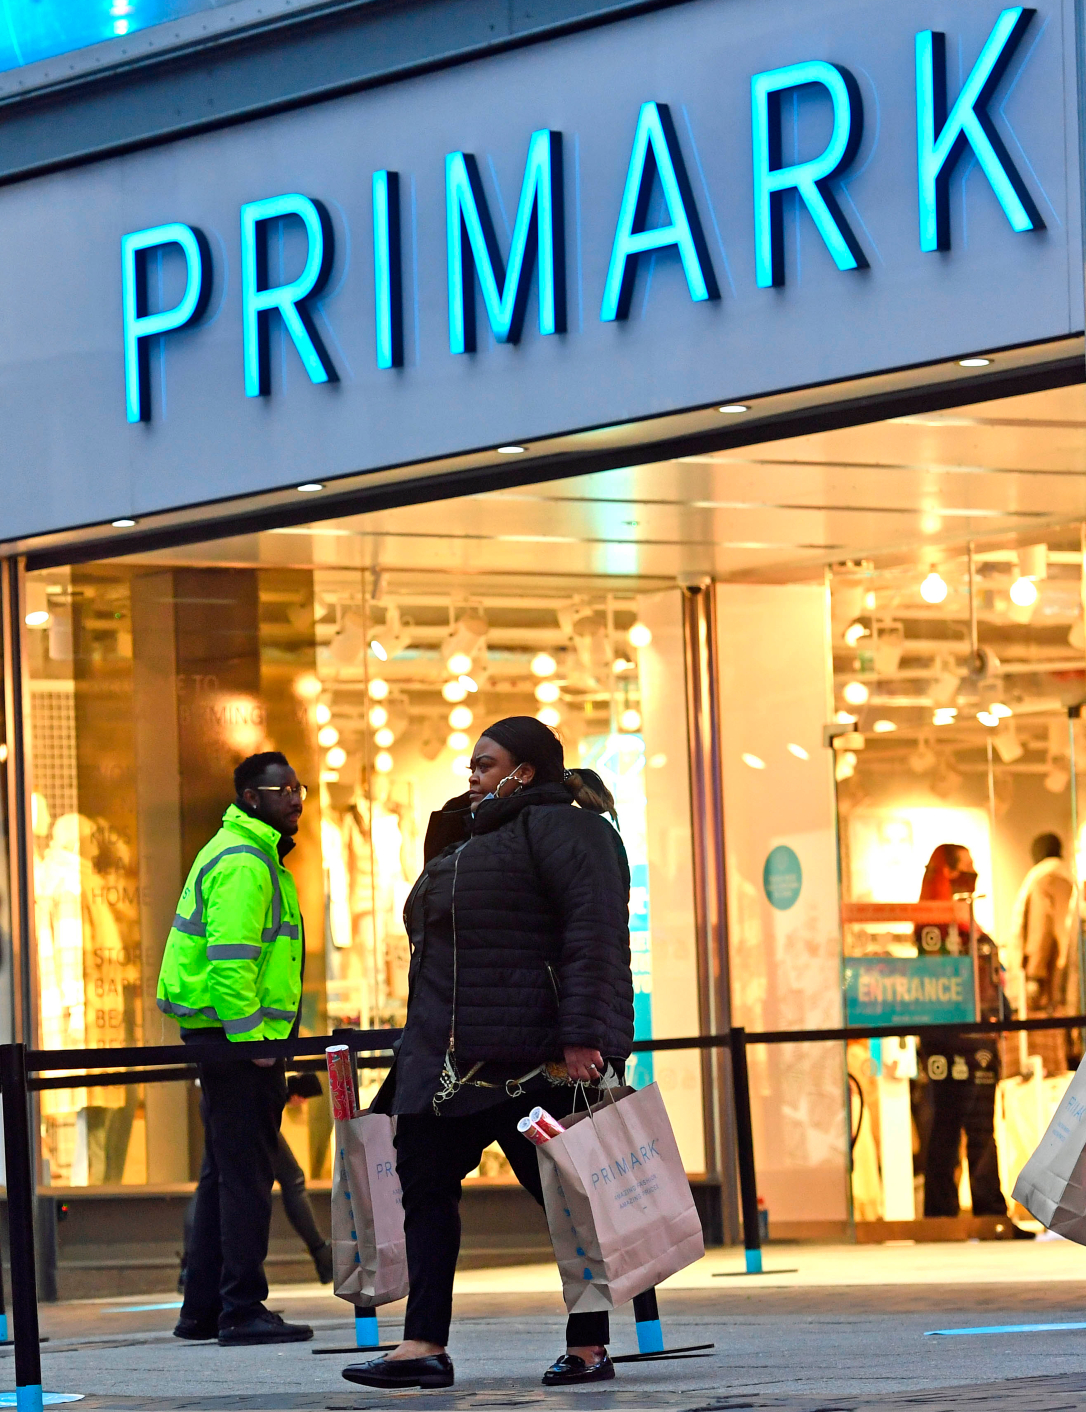 Primark parent Associated British Foods estimates $886.1M in lost sales from new lockdowns designed to curb coronavirus infection rates.